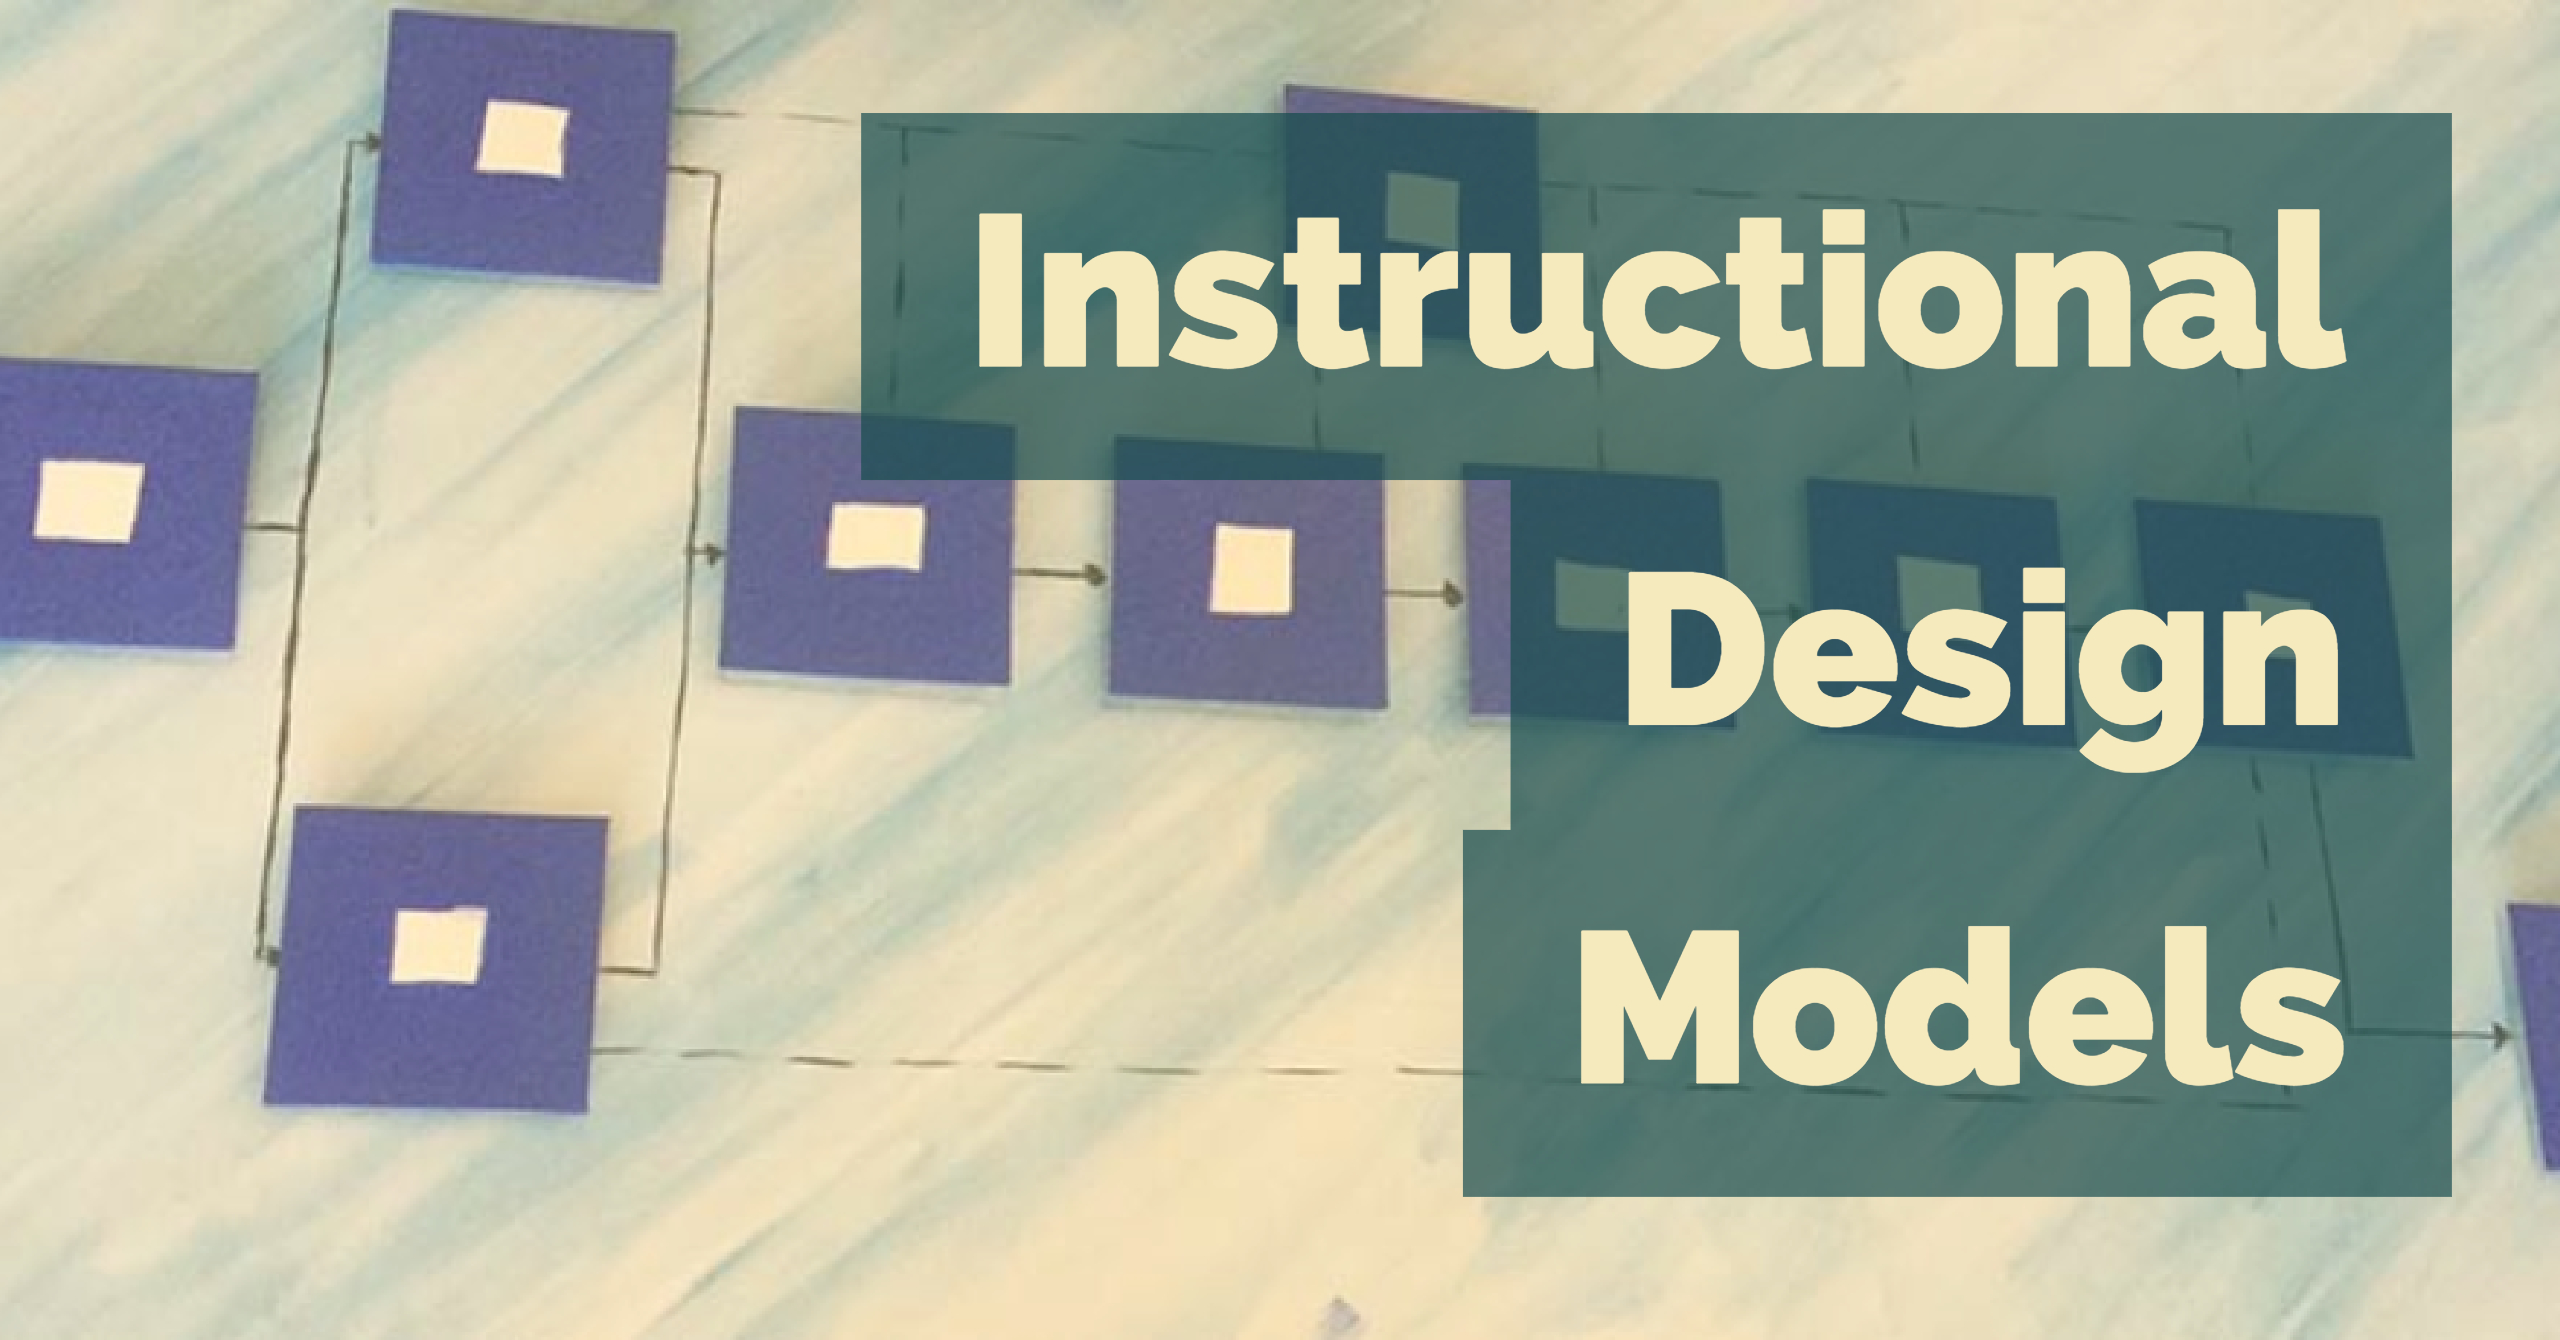 Different Models Of Instructional Design Christopher Bergeron